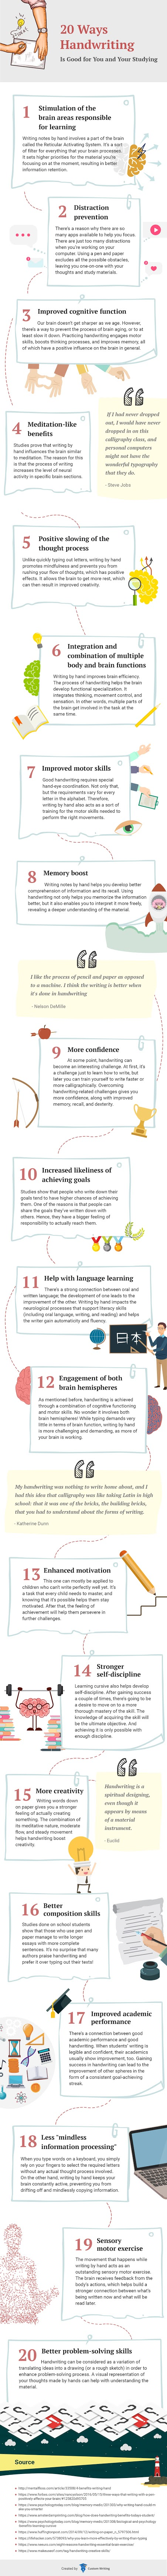 20 Ways Handwriting Is Good for You and Your Studying #infographic #Handwriting #Studying #Writing Tips